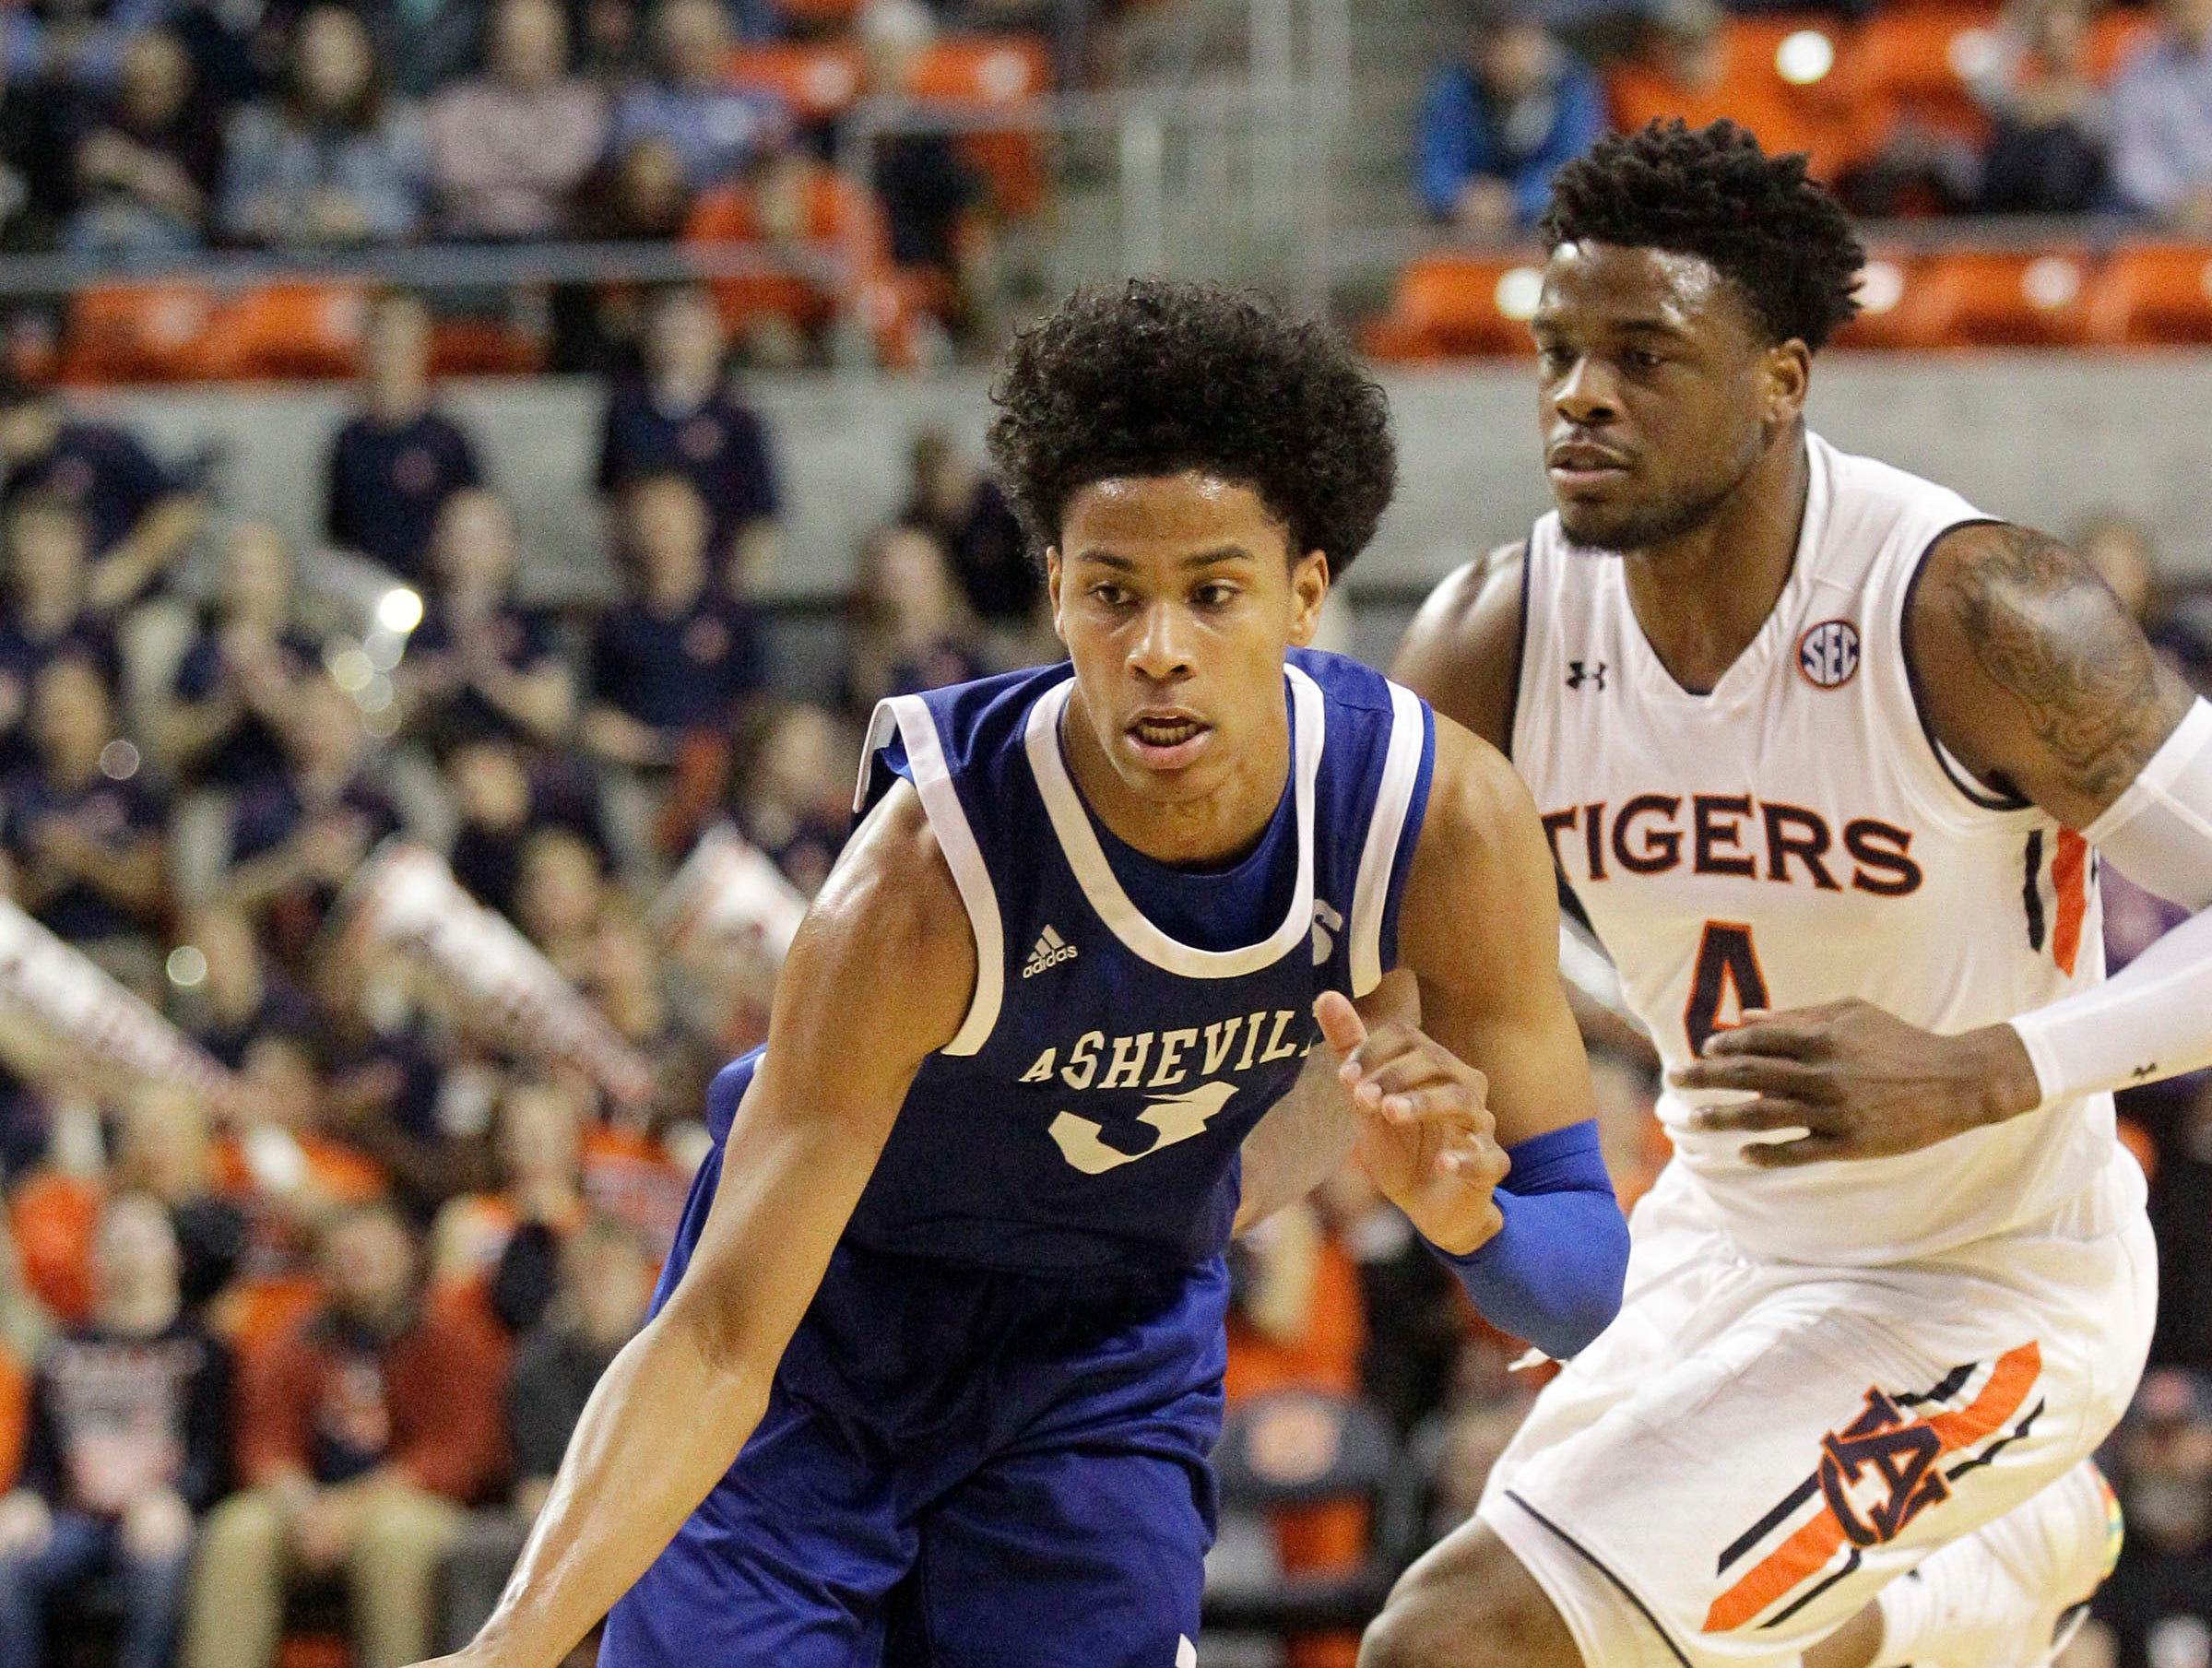 Dec 4, 2018; Auburn, AL, USA; UNC-Asheville Bulldogs guard Tajion Jones (3) dribbles past Auburn Tigers guard Malik Dunbar (4) during the first half at Auburn Arena. Mandatory Credit: John Reed-USA TODAY Sports